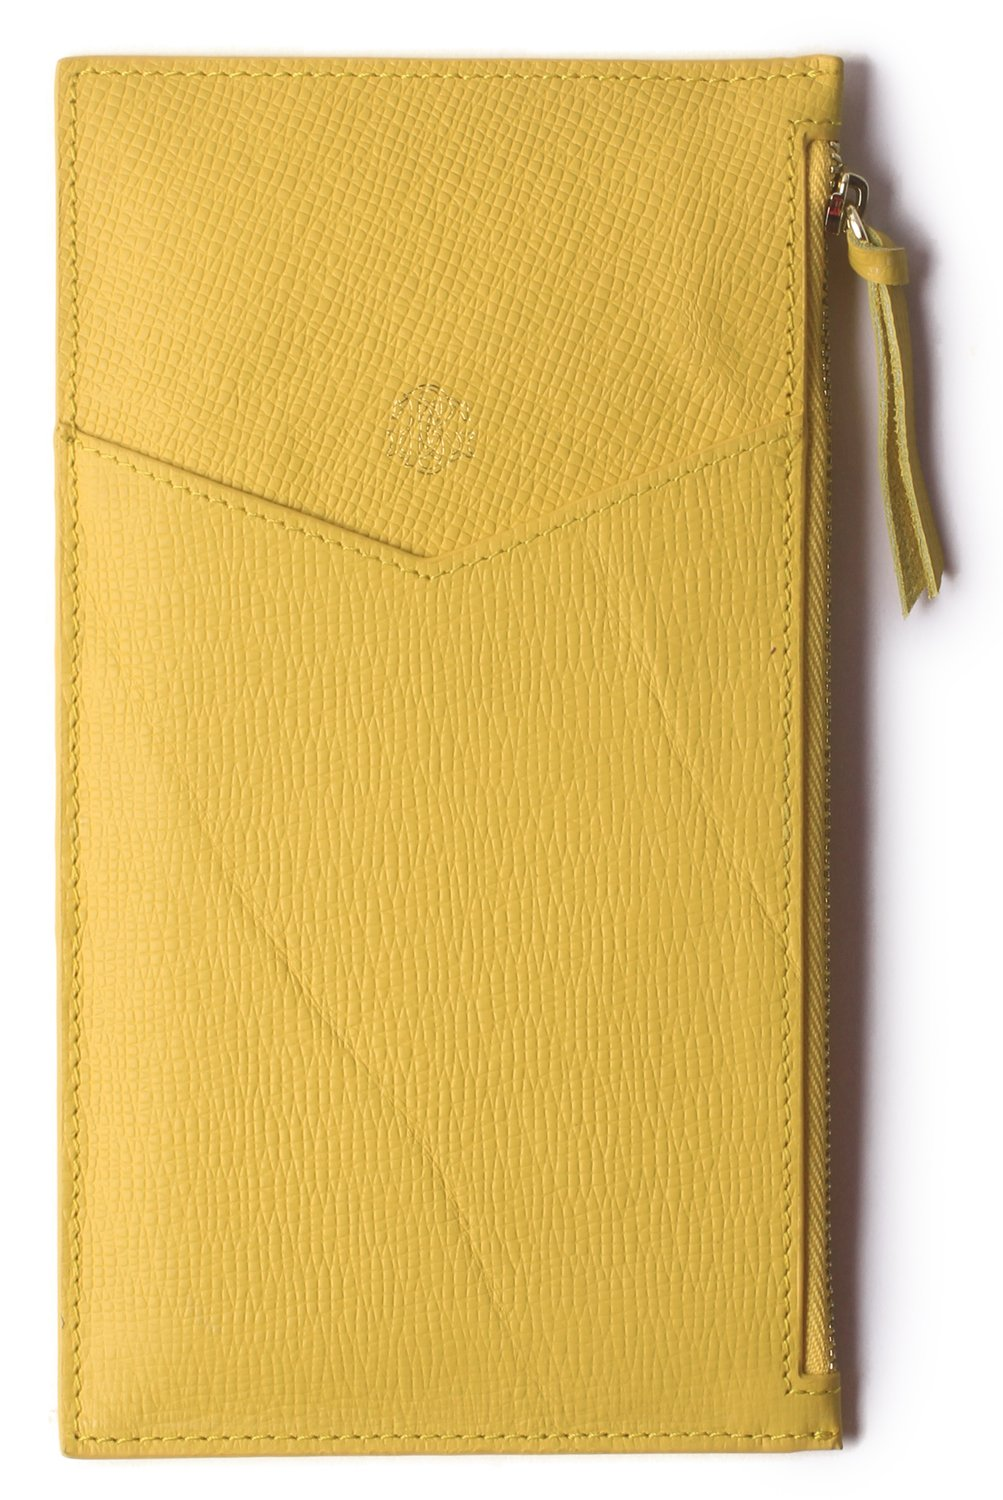 Borgasets Ultra-Thin Women's Wallet RFID Blocking Leather Credit Card Holder Zipper Purse for Phone Yellow